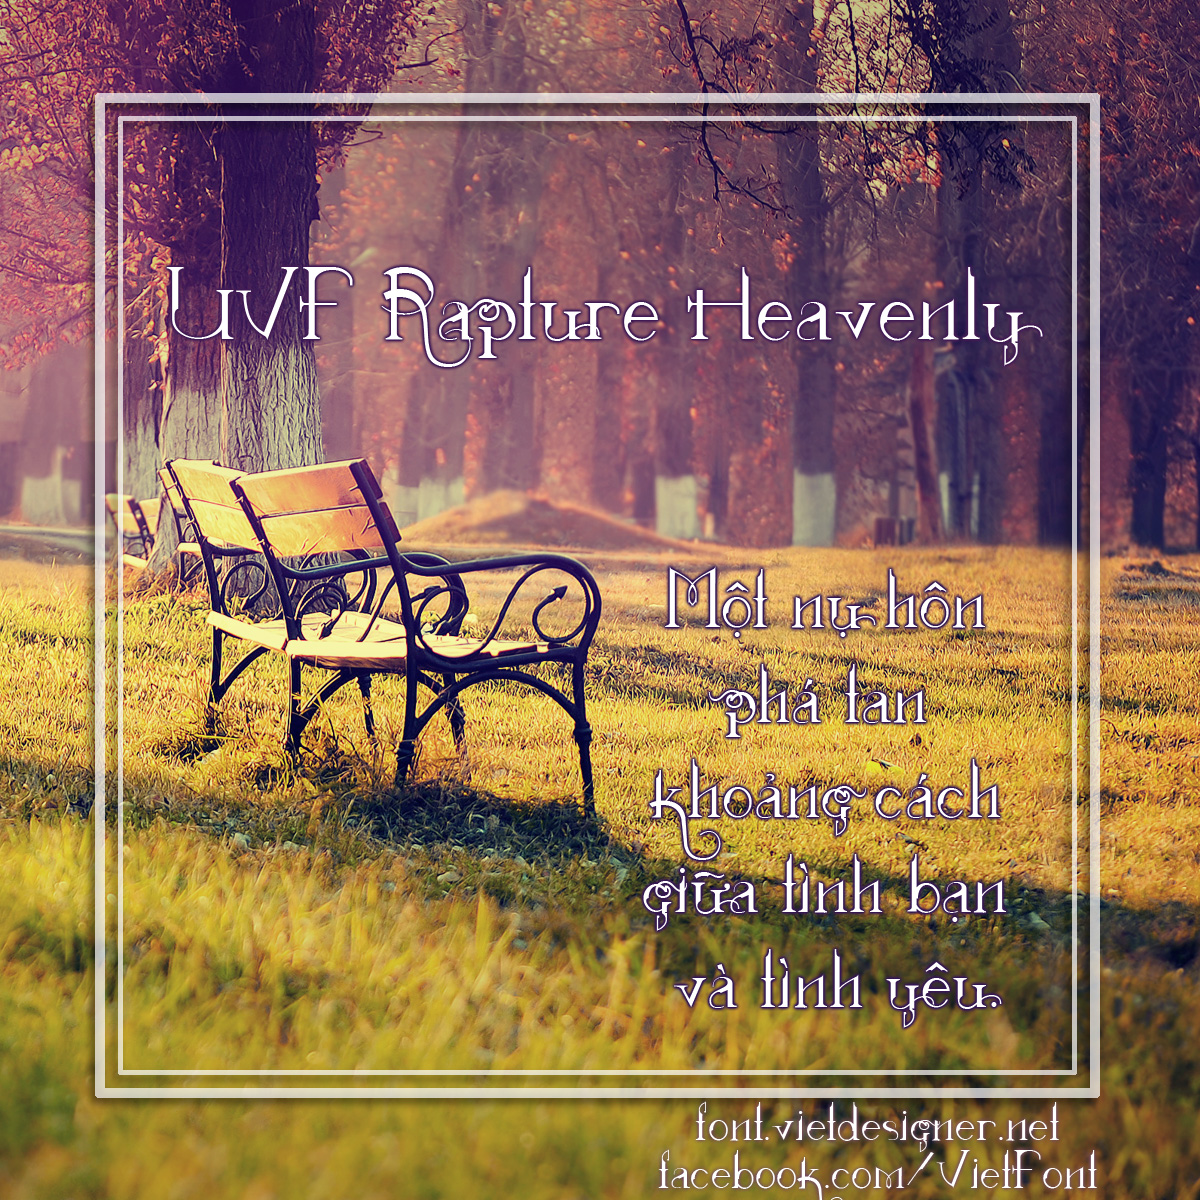 UVF Rapture Heavenly